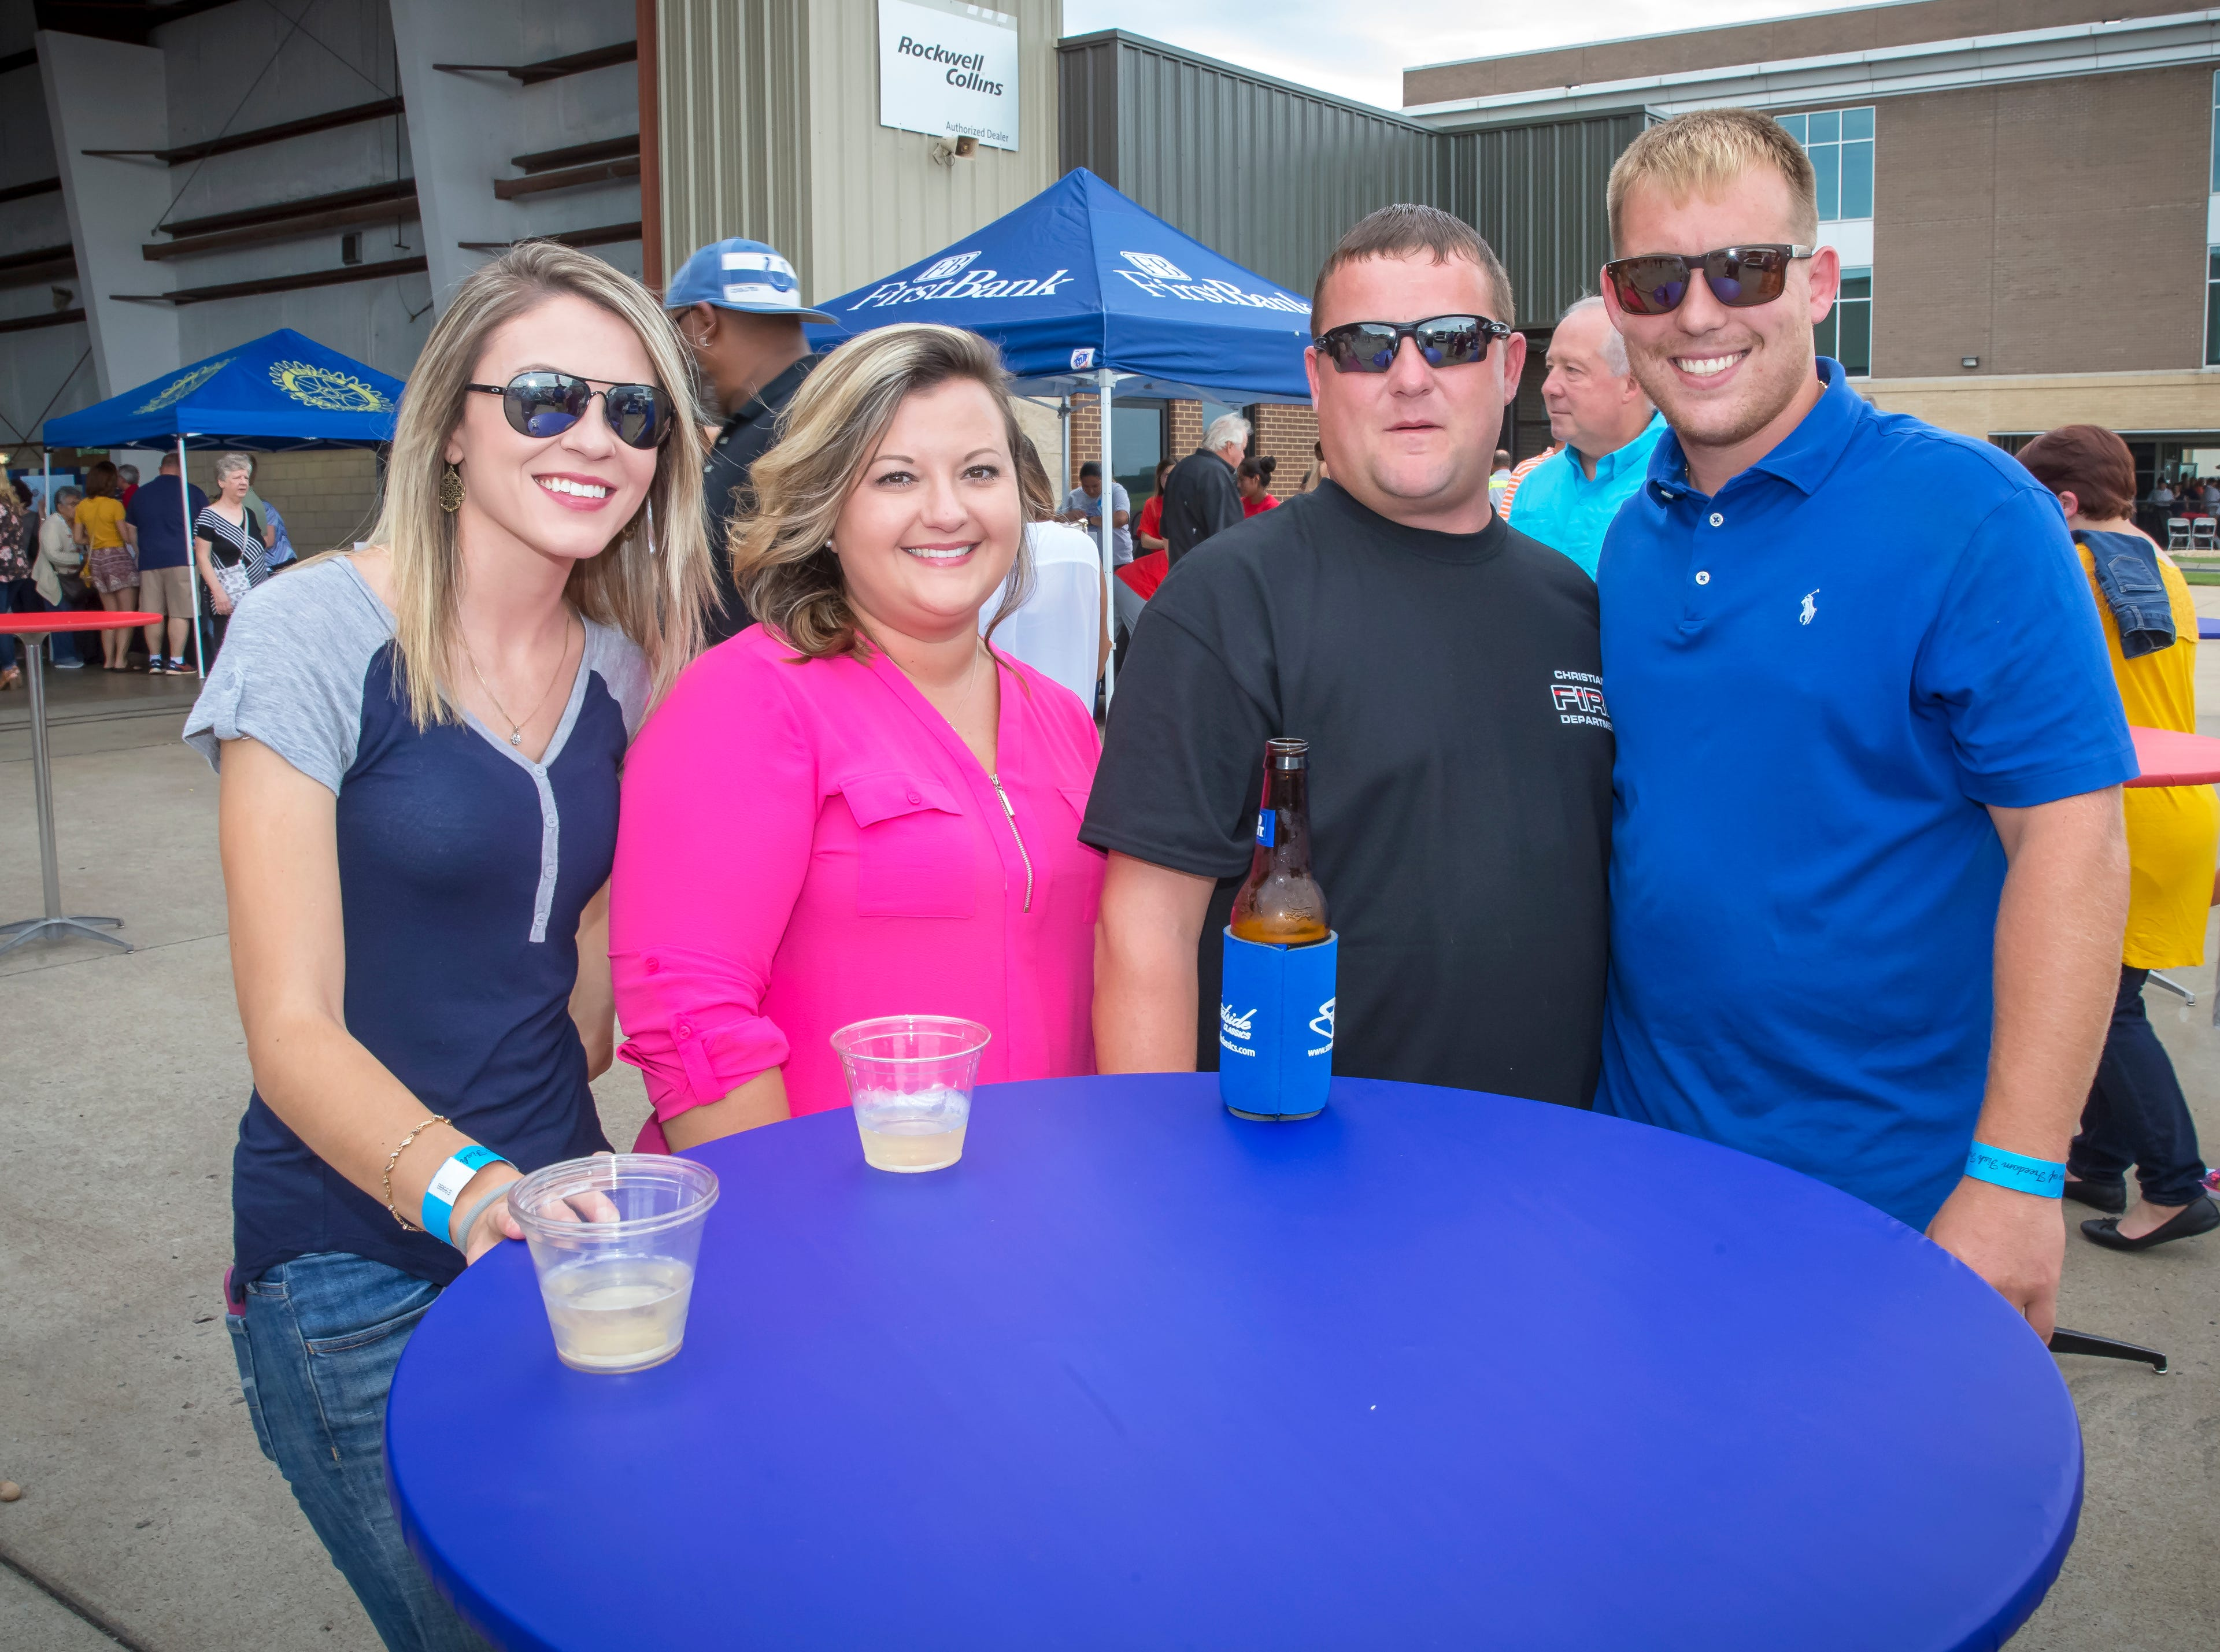 The annual Wings of Freedom Fish Fry hosted by Smyrna Rotary Club was held Saturday, Sept. 8, 2018 at the Corporate Flight Management Hangar at Smyrna Airport.